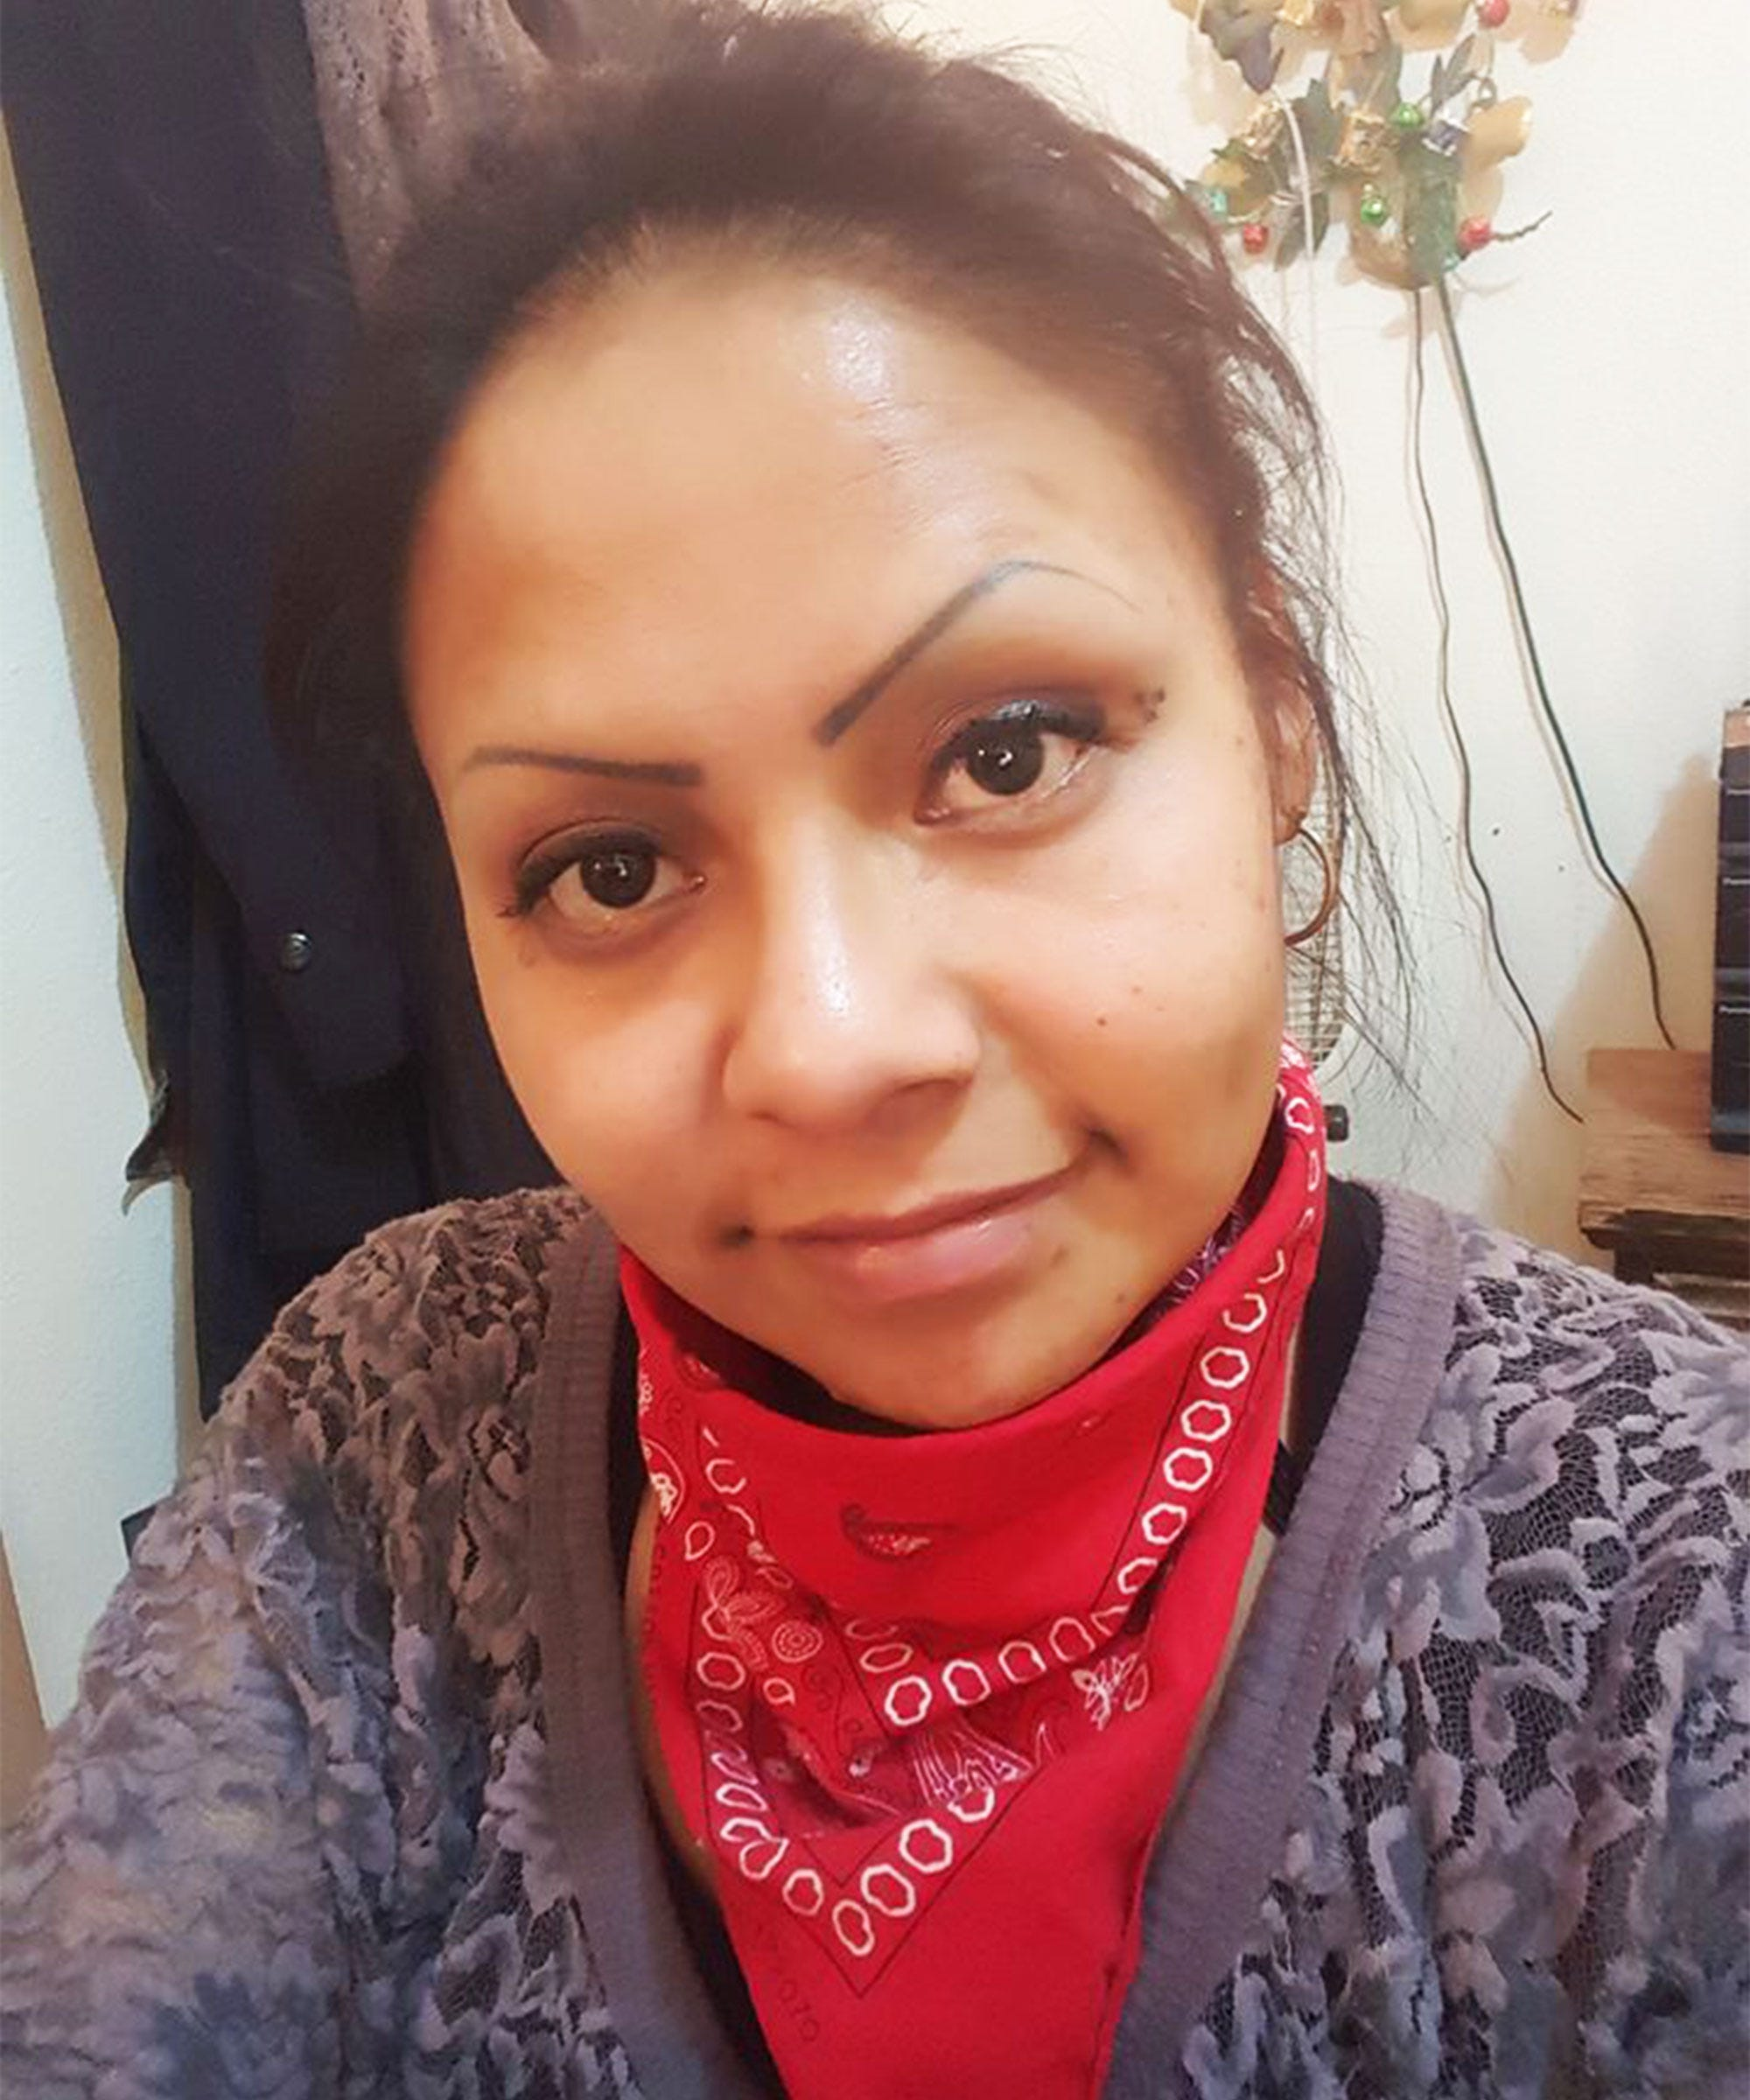 Police Find Remains Of Missing Native American Woman As Congress Seeks Solutions